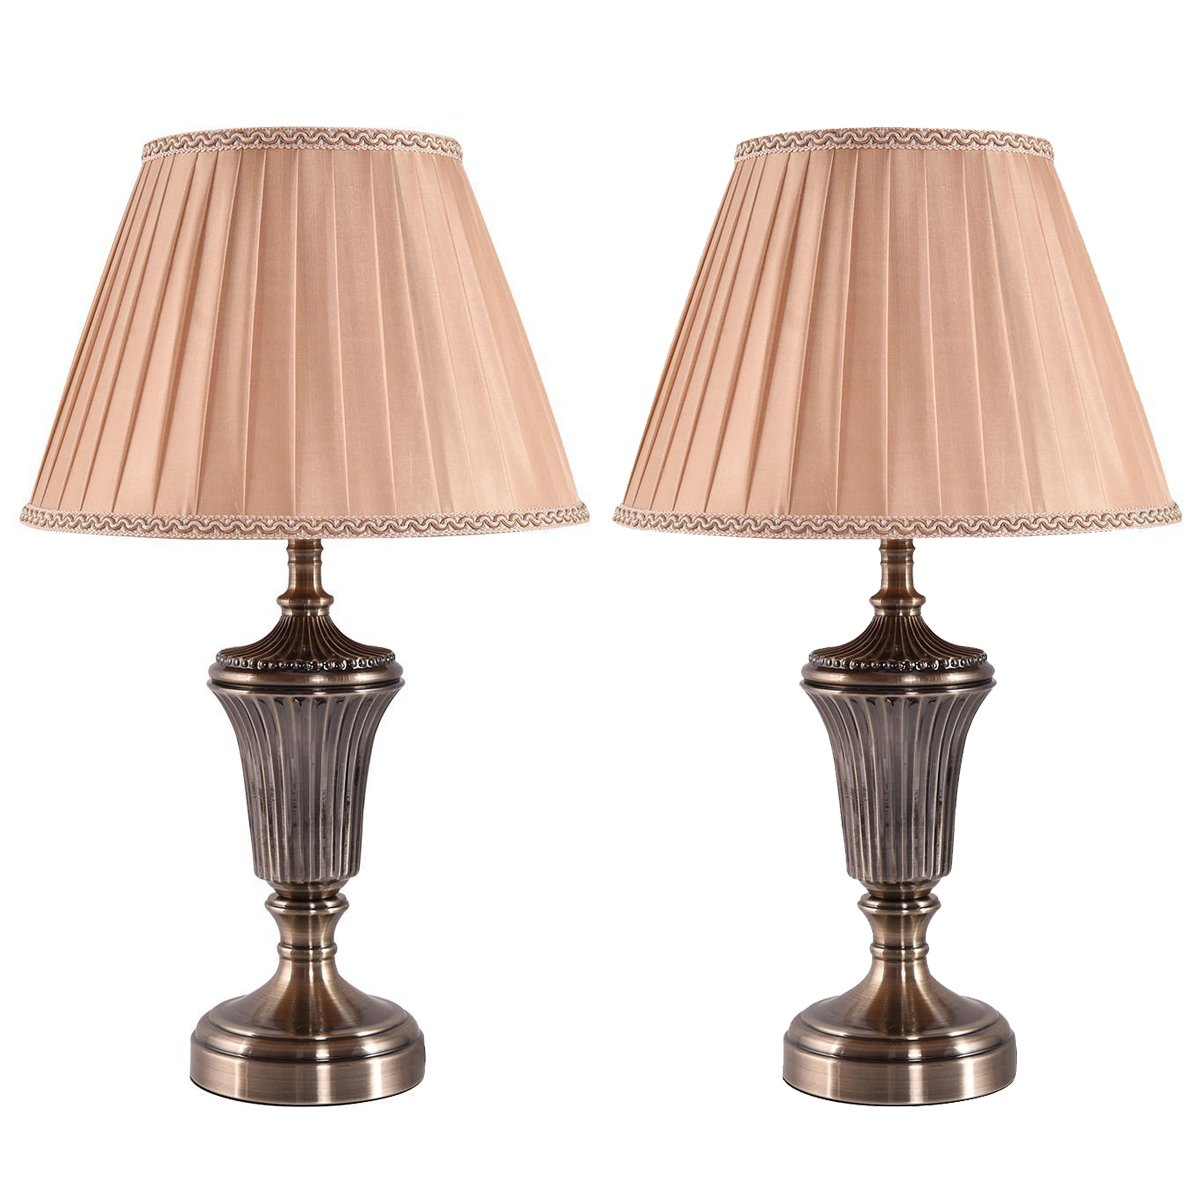 Costzon Bedside Table Lamp, Traditional Elegant Steel Base, Antique Style with Warm Fabric Shade Bulb for Bedroom Living Room Coffee Desk Lamp, Include LED Bulb, Cord (Brass, Set of 2)